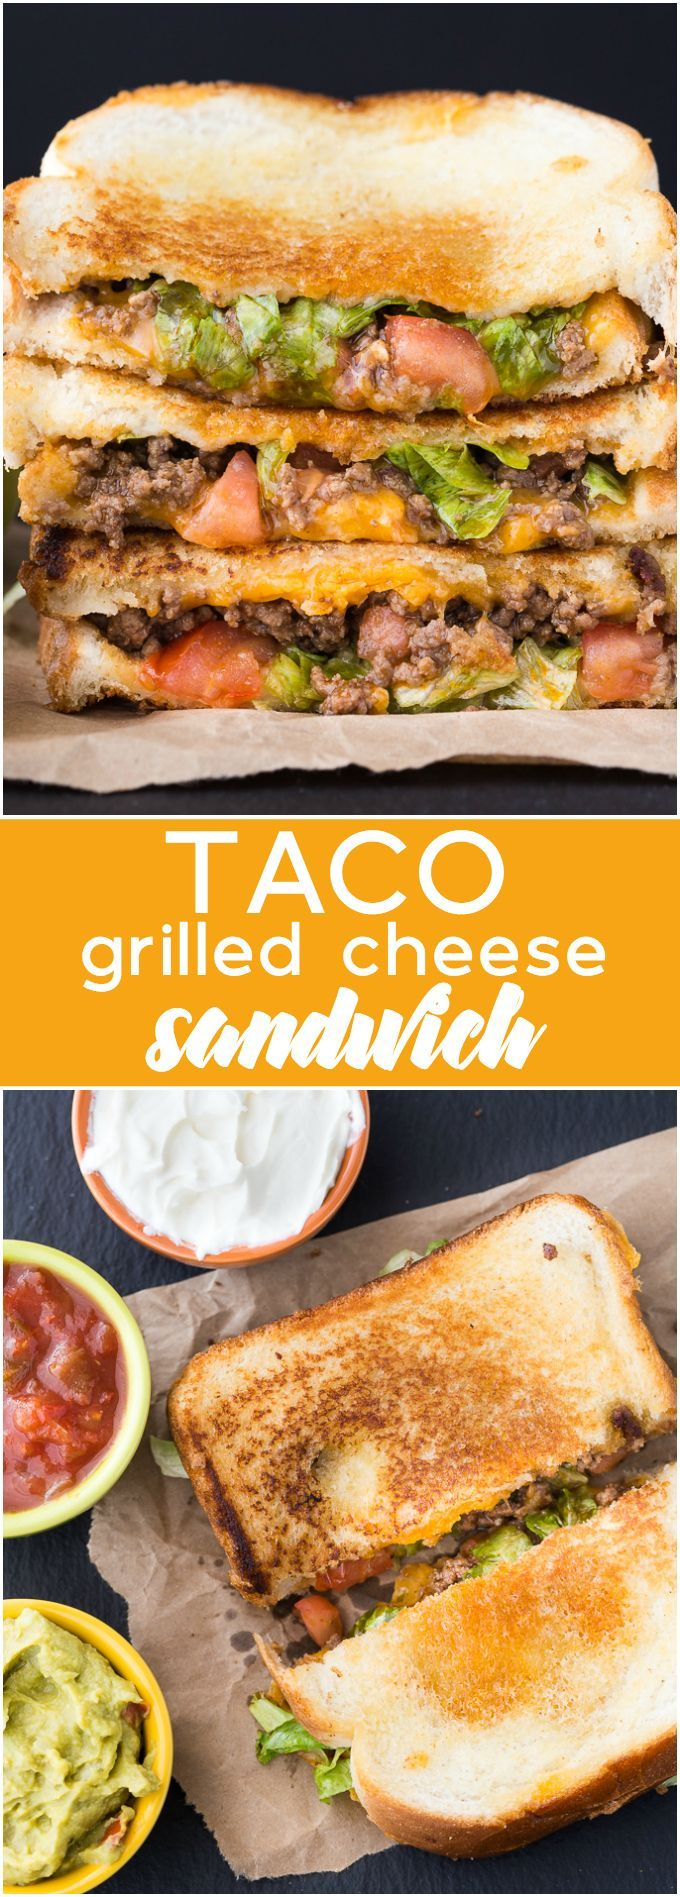 Taco Grilled Cheese Sandwich - Celebrate National Grilled Cheese Day by taking two recipe favourites and combining them into one mouthwatering sandwich! So easy. So good. #Breadventure #NationalGrilledCheeseDay #ad /dempsters/